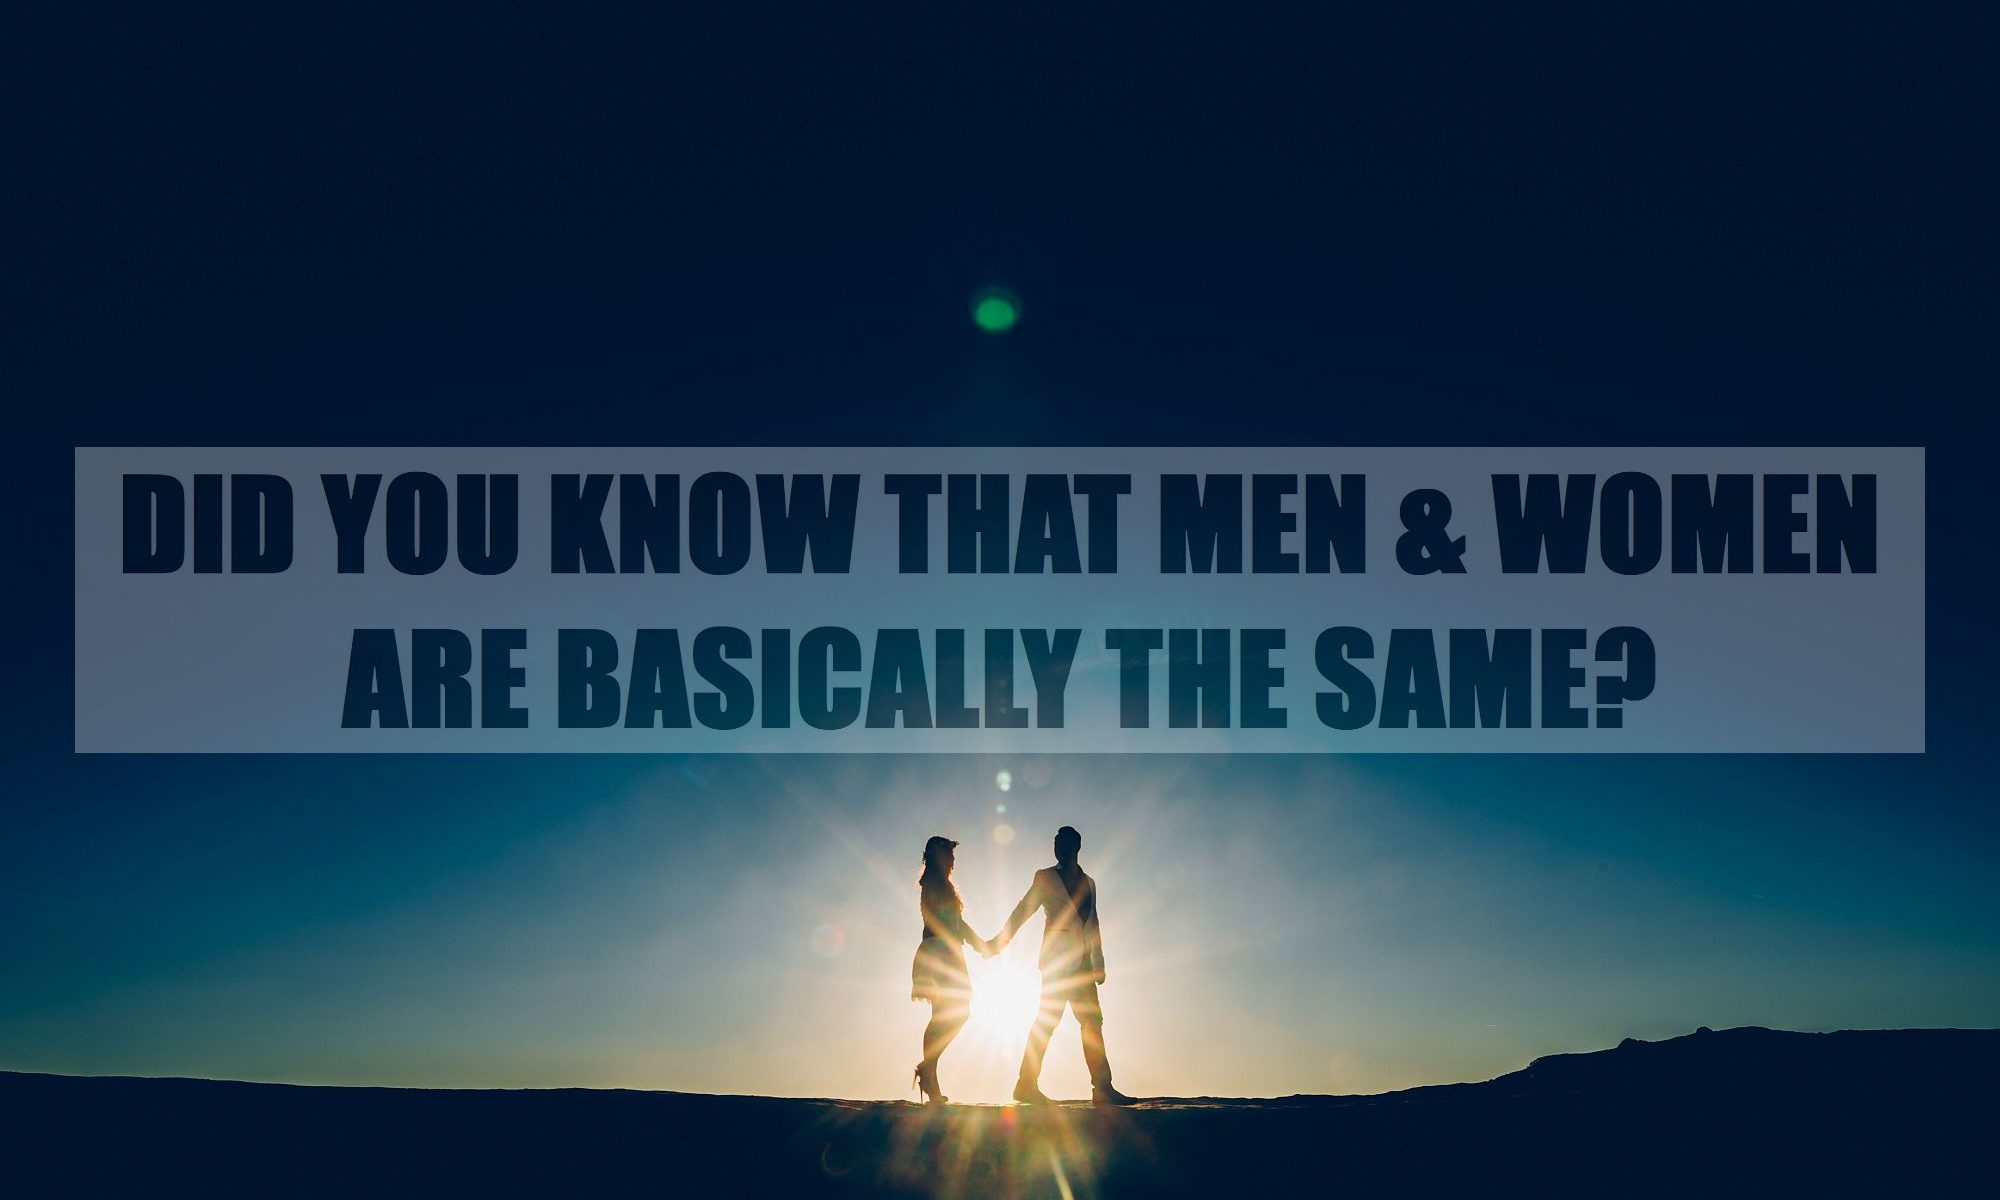 men-women-are-the-same-the-cause-of-violence-war-terrorism-crime-cruelty-in-humanity-human-history-2000